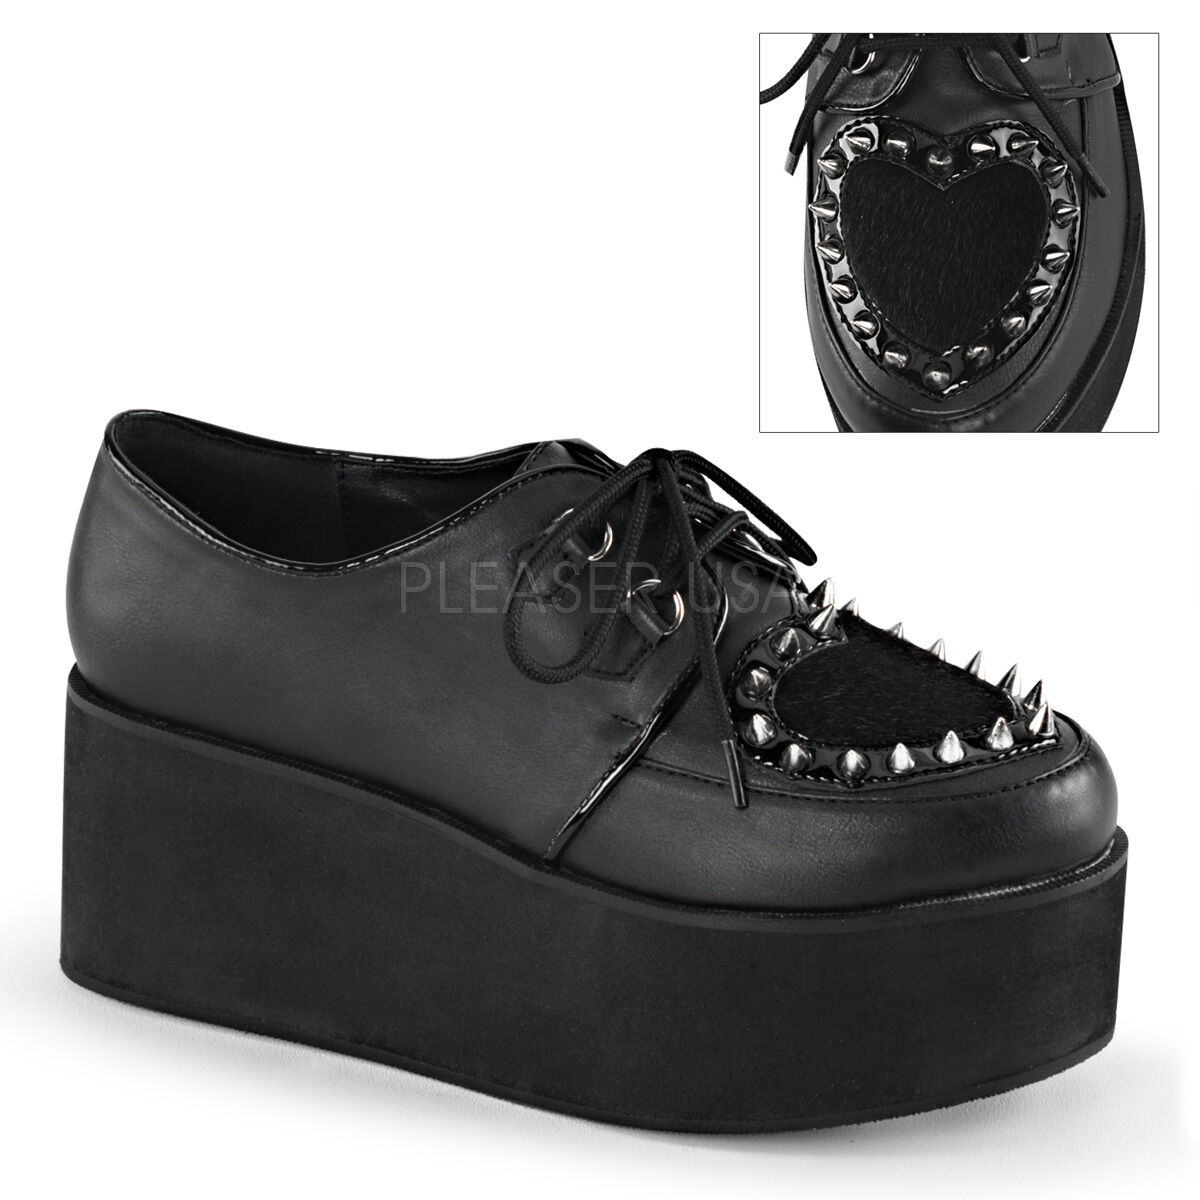 BIG SALE DEMONIA GRIP-02 Punk Goth Platform Studded Heart Creepers Schuhes NEU 11